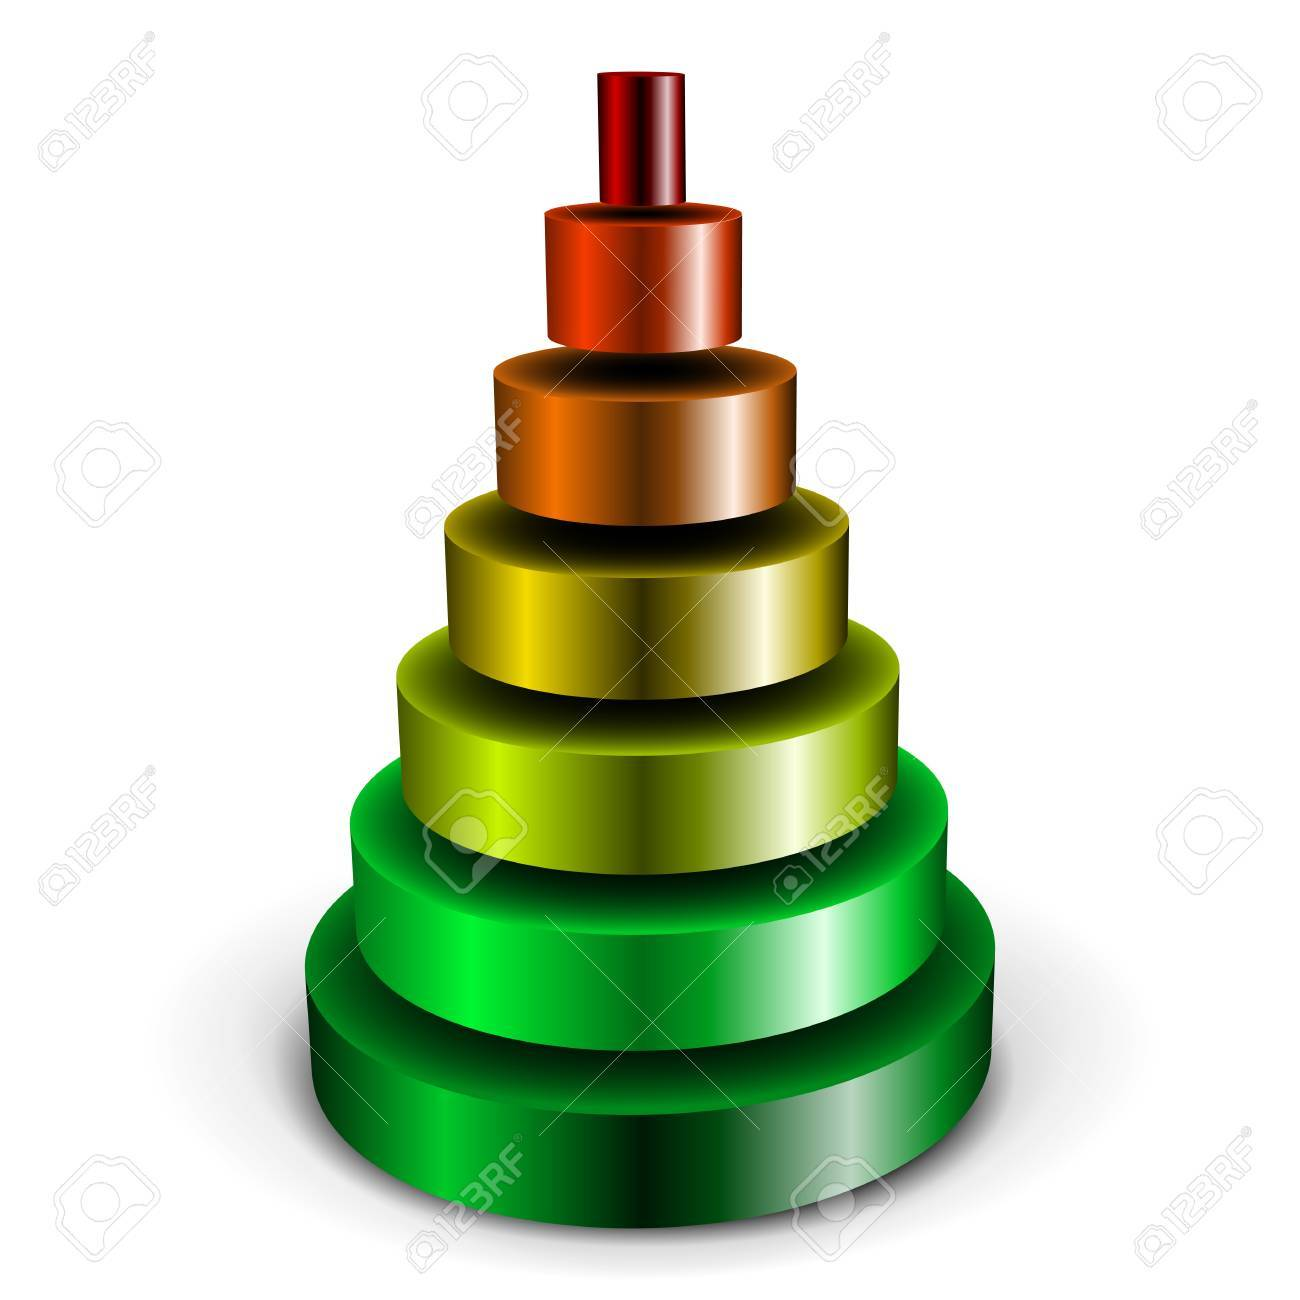 illustration of a sliced metallic cylinder pyramid filled with different colors Stock Vector - 12163563